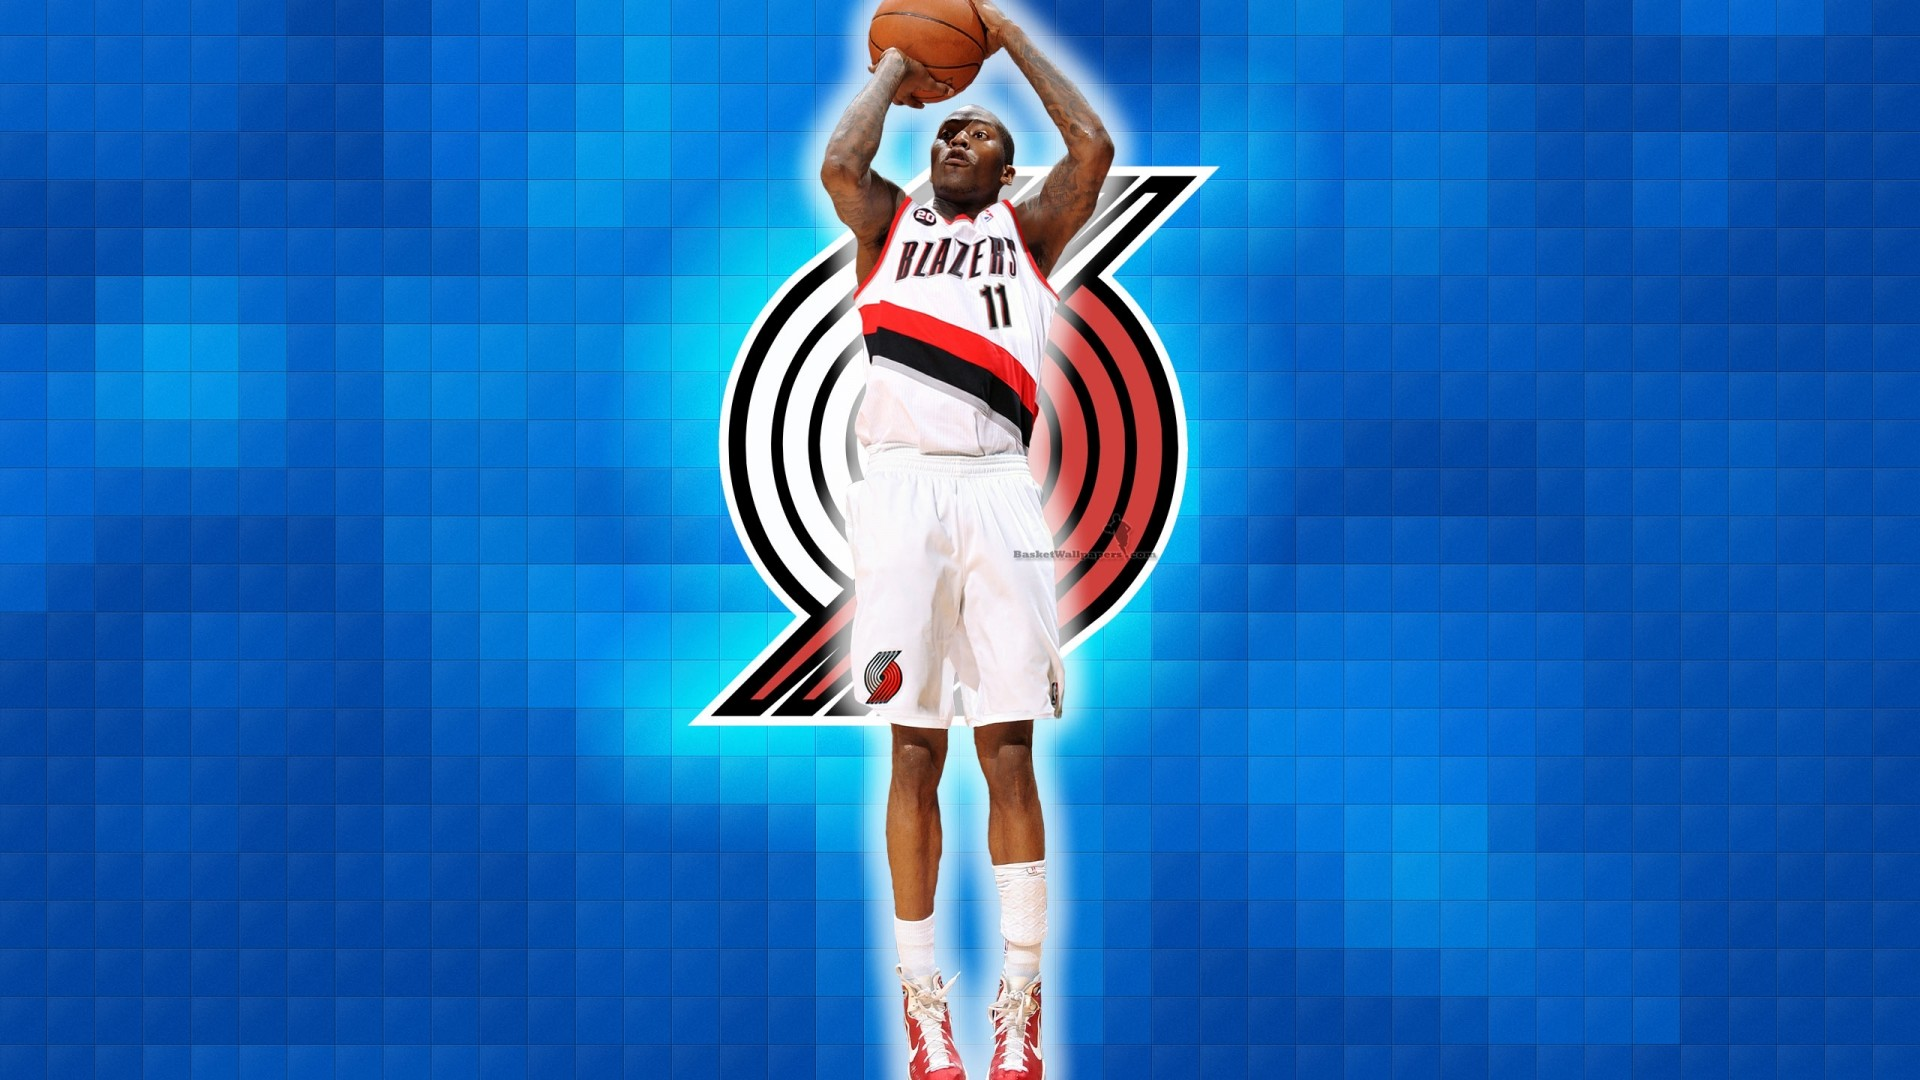 1920x1080 Jamal Crawford Blazers basketball wallpaper